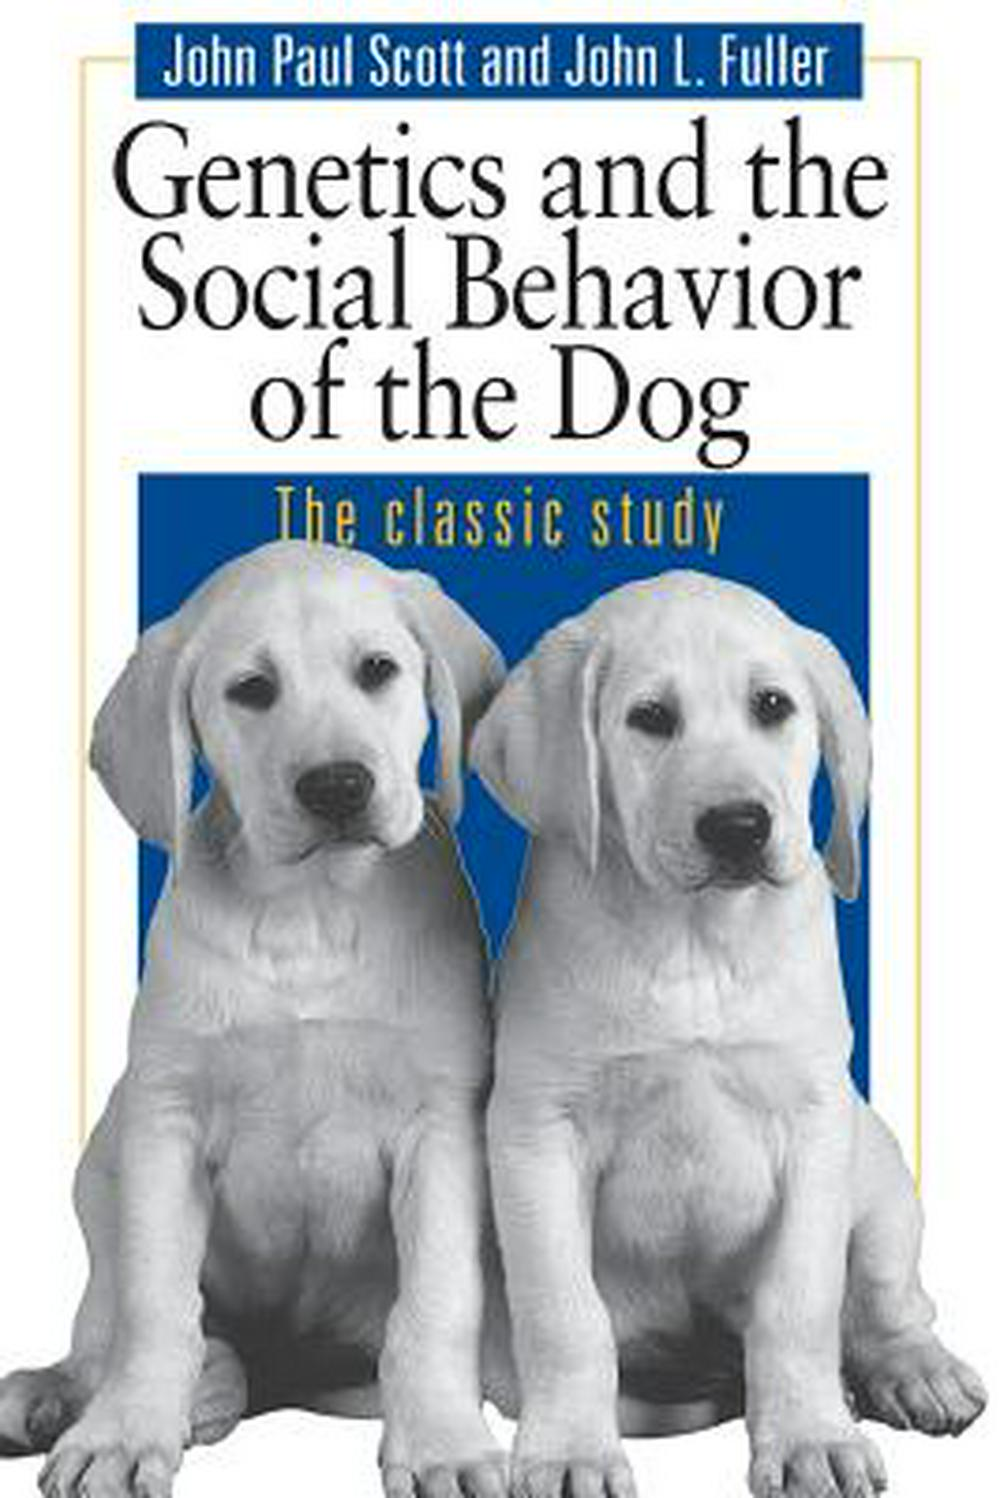 Dog Behaviour by John Paul Scott, ISBN: 9780226743387